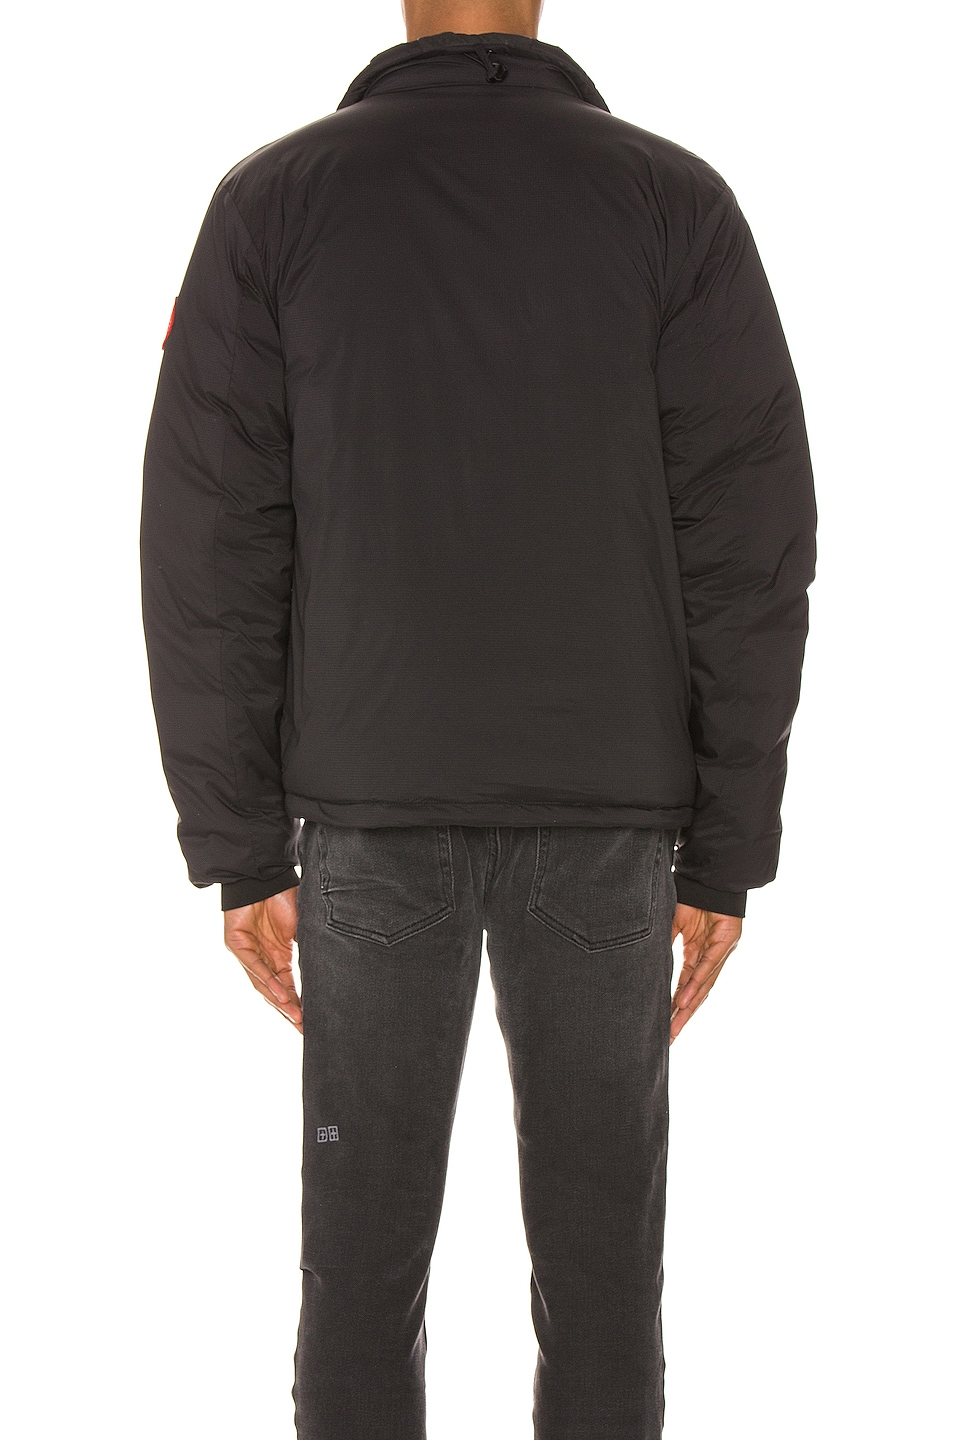 Image 5 of Canada Goose Lodge Jacket in Black